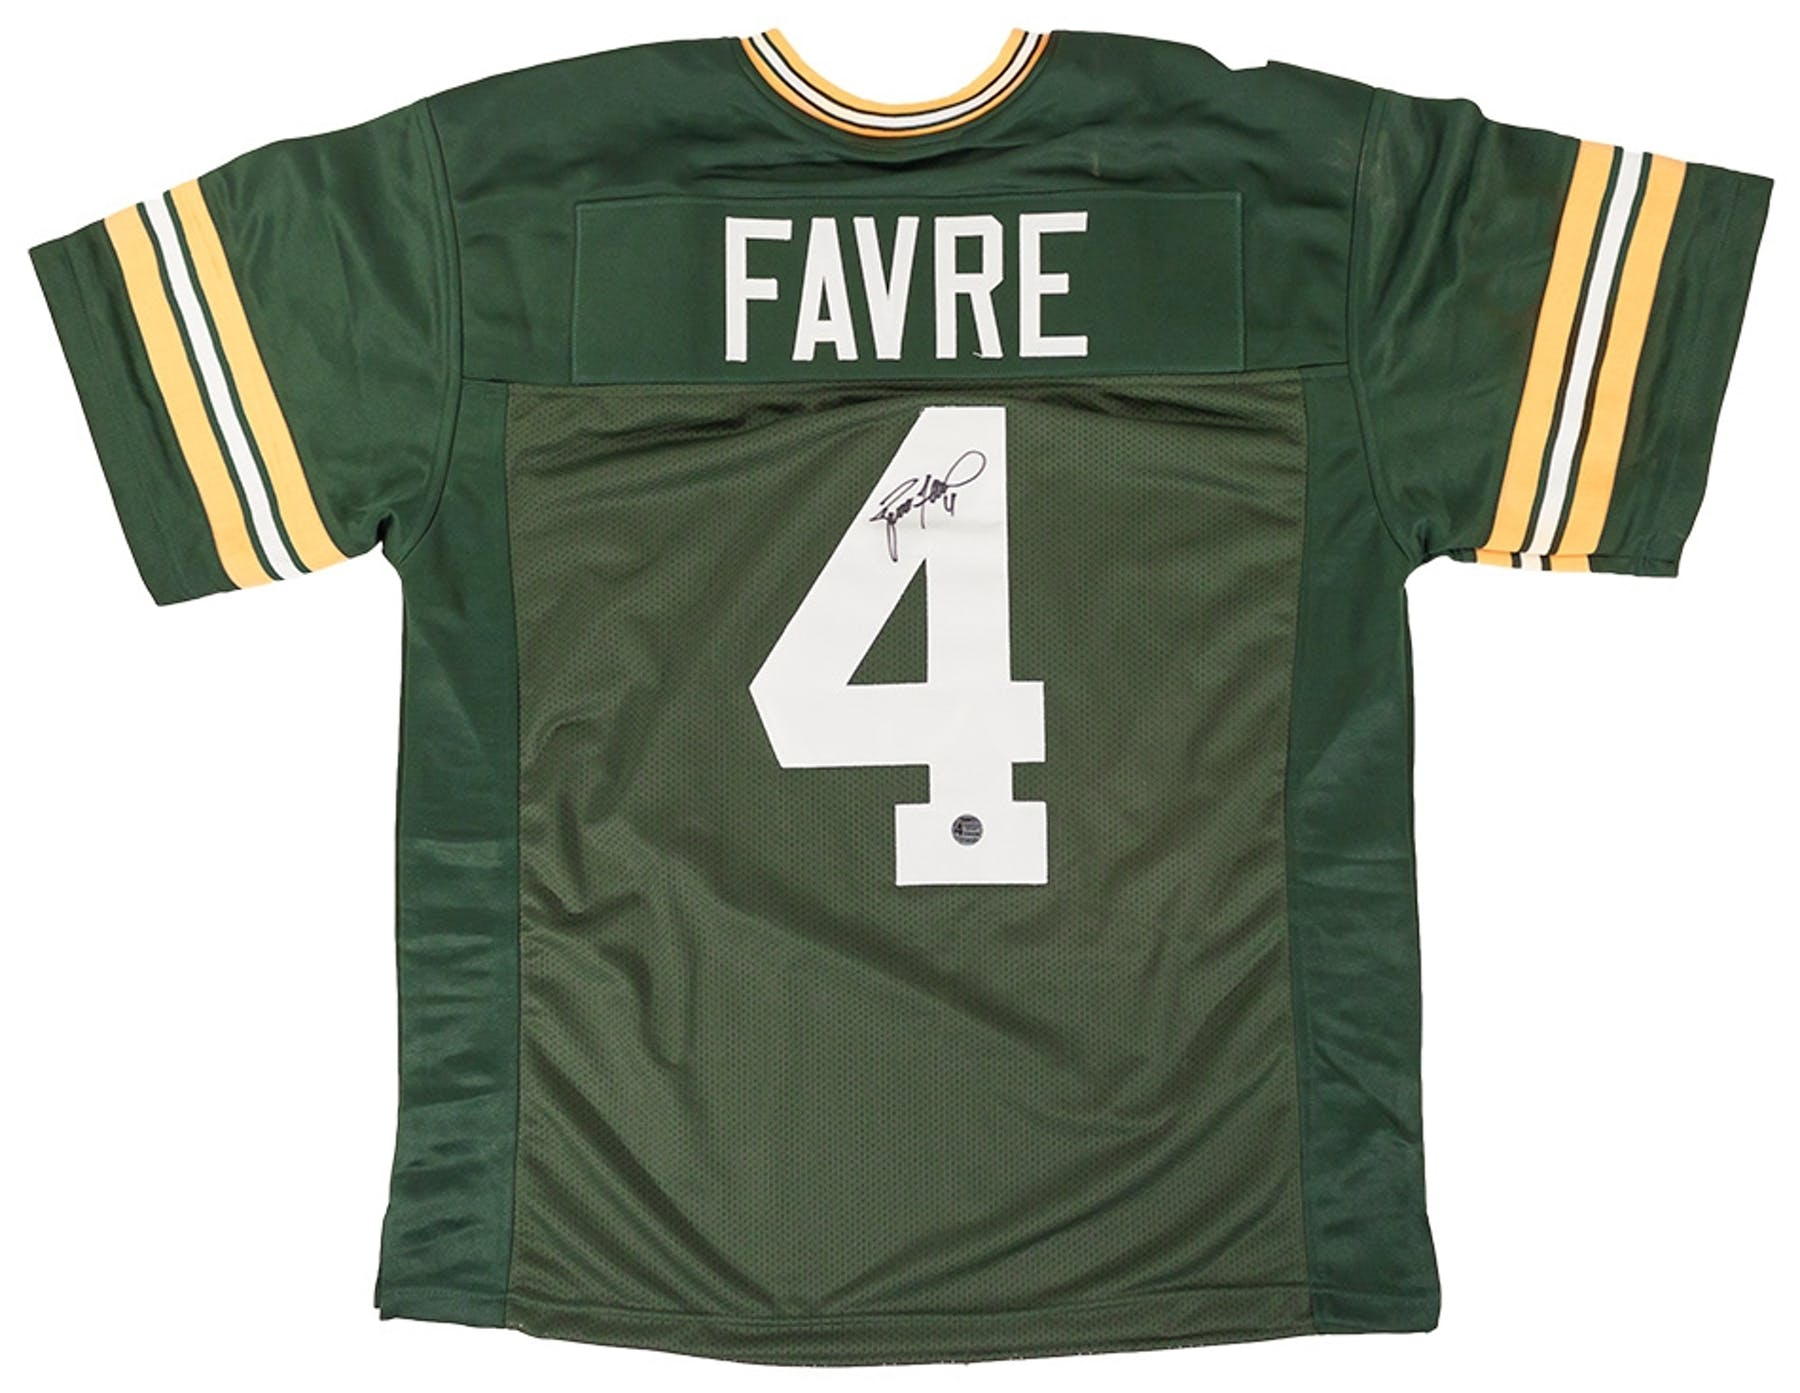 bdd8fbf85 Brett Favre Autographed Green Bay Packers Green Football Jersey ...